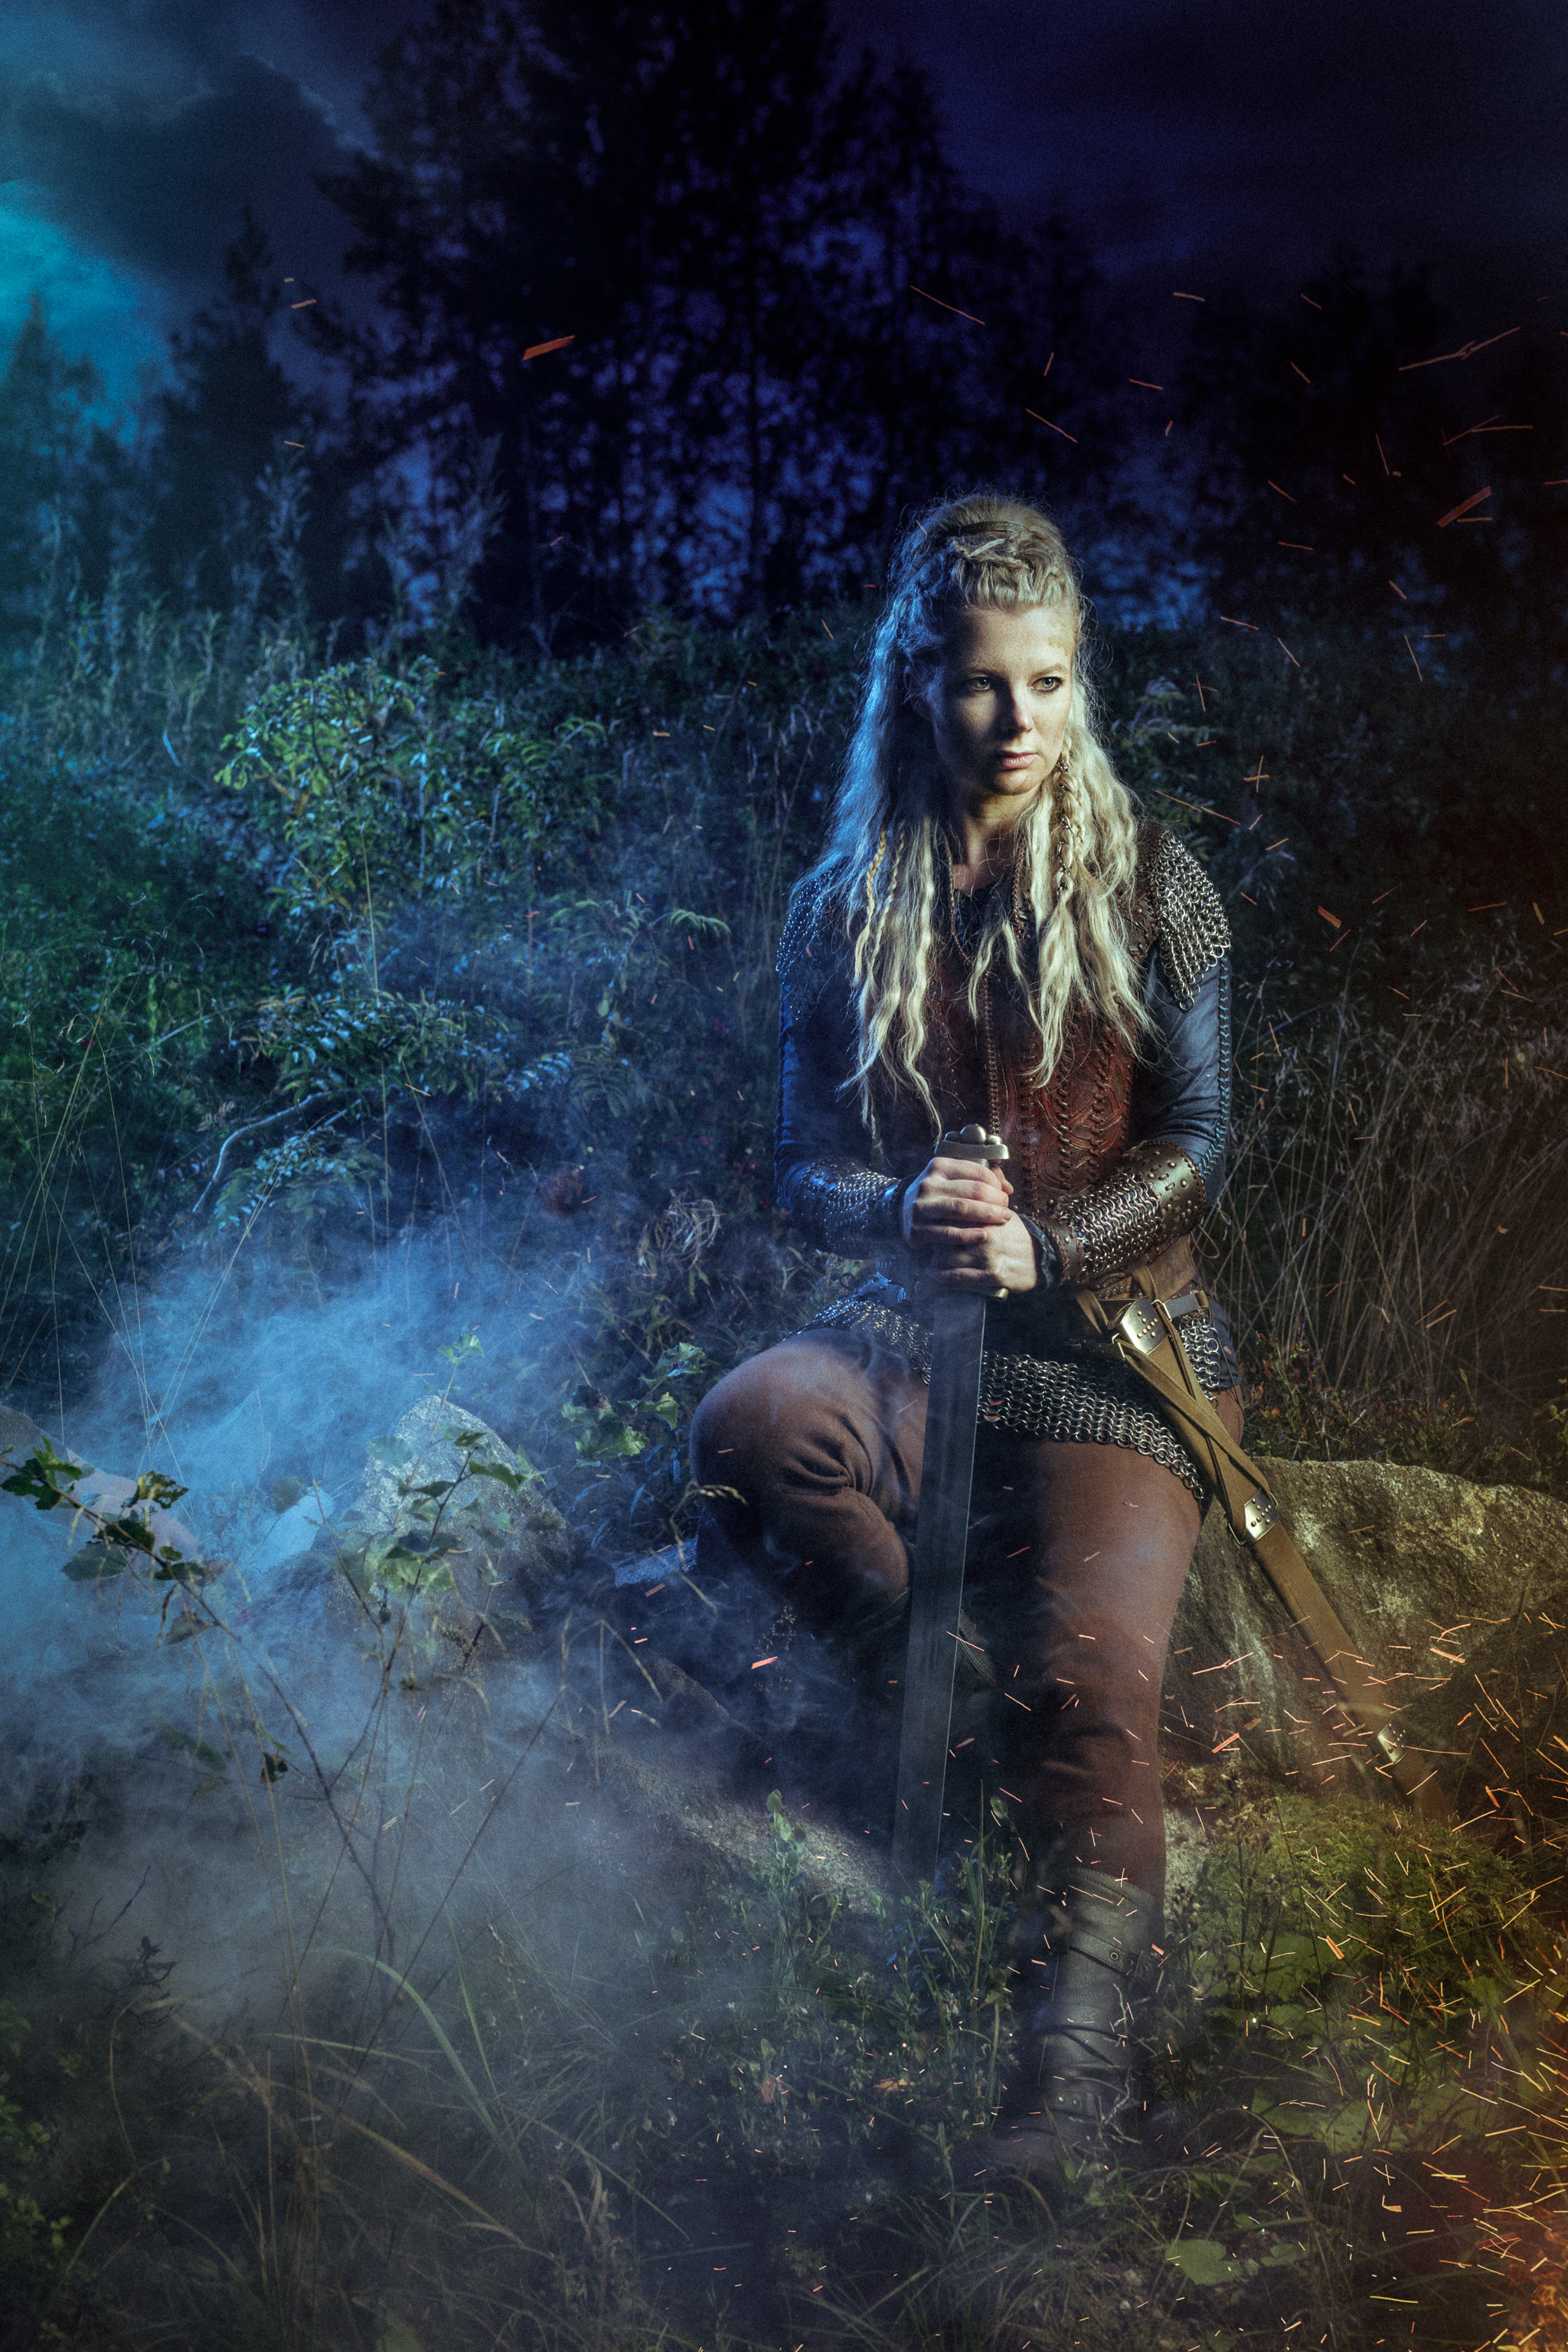 Mythical Creatures In The Fall Wallpaper Watch Out Lagertha There Is A New Badass Shieldmaiden In